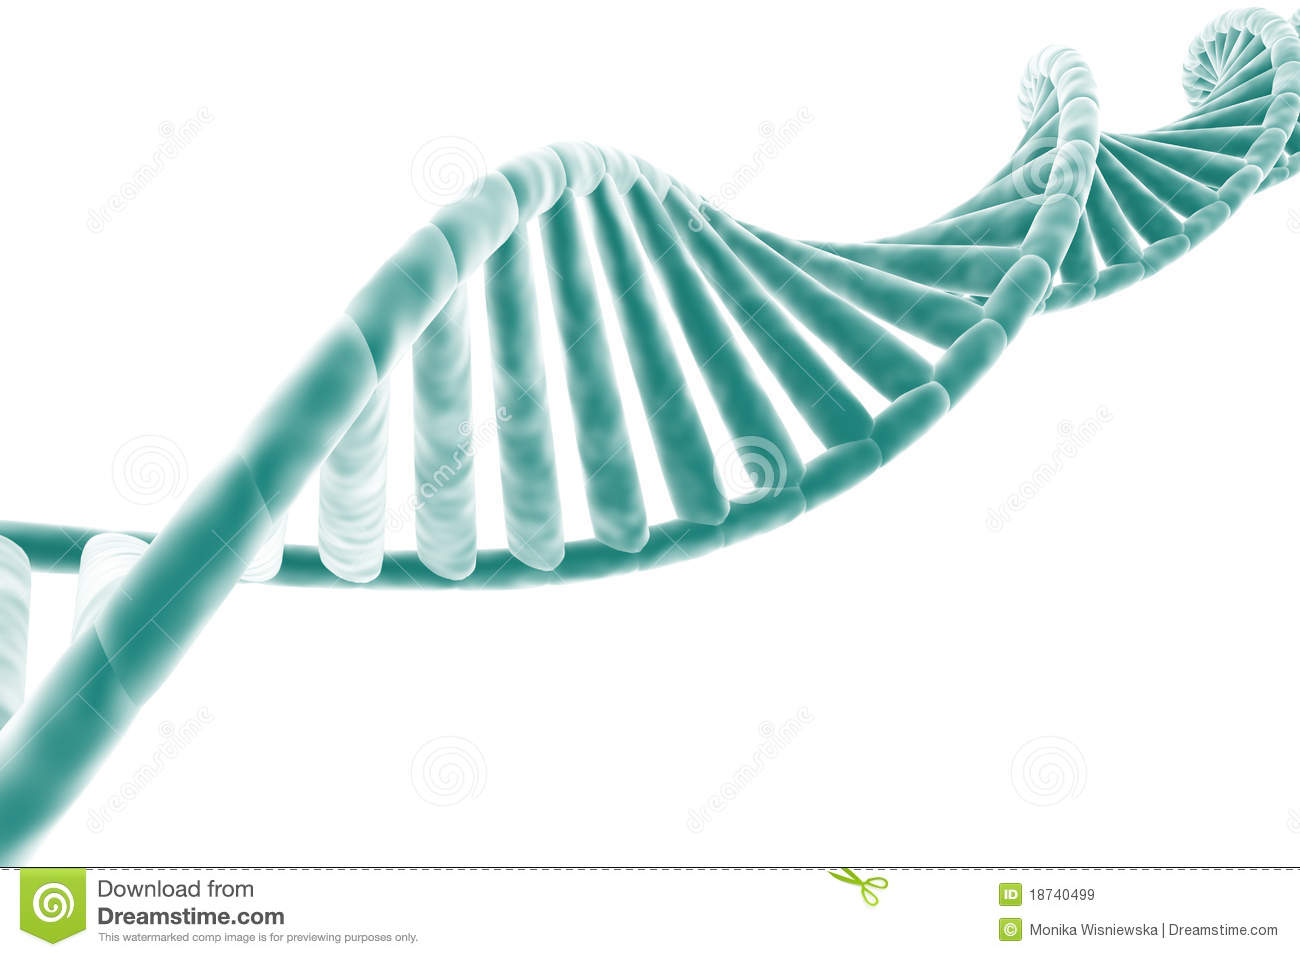 DNA Strand Royalty Free Stock Images  Image 18740499